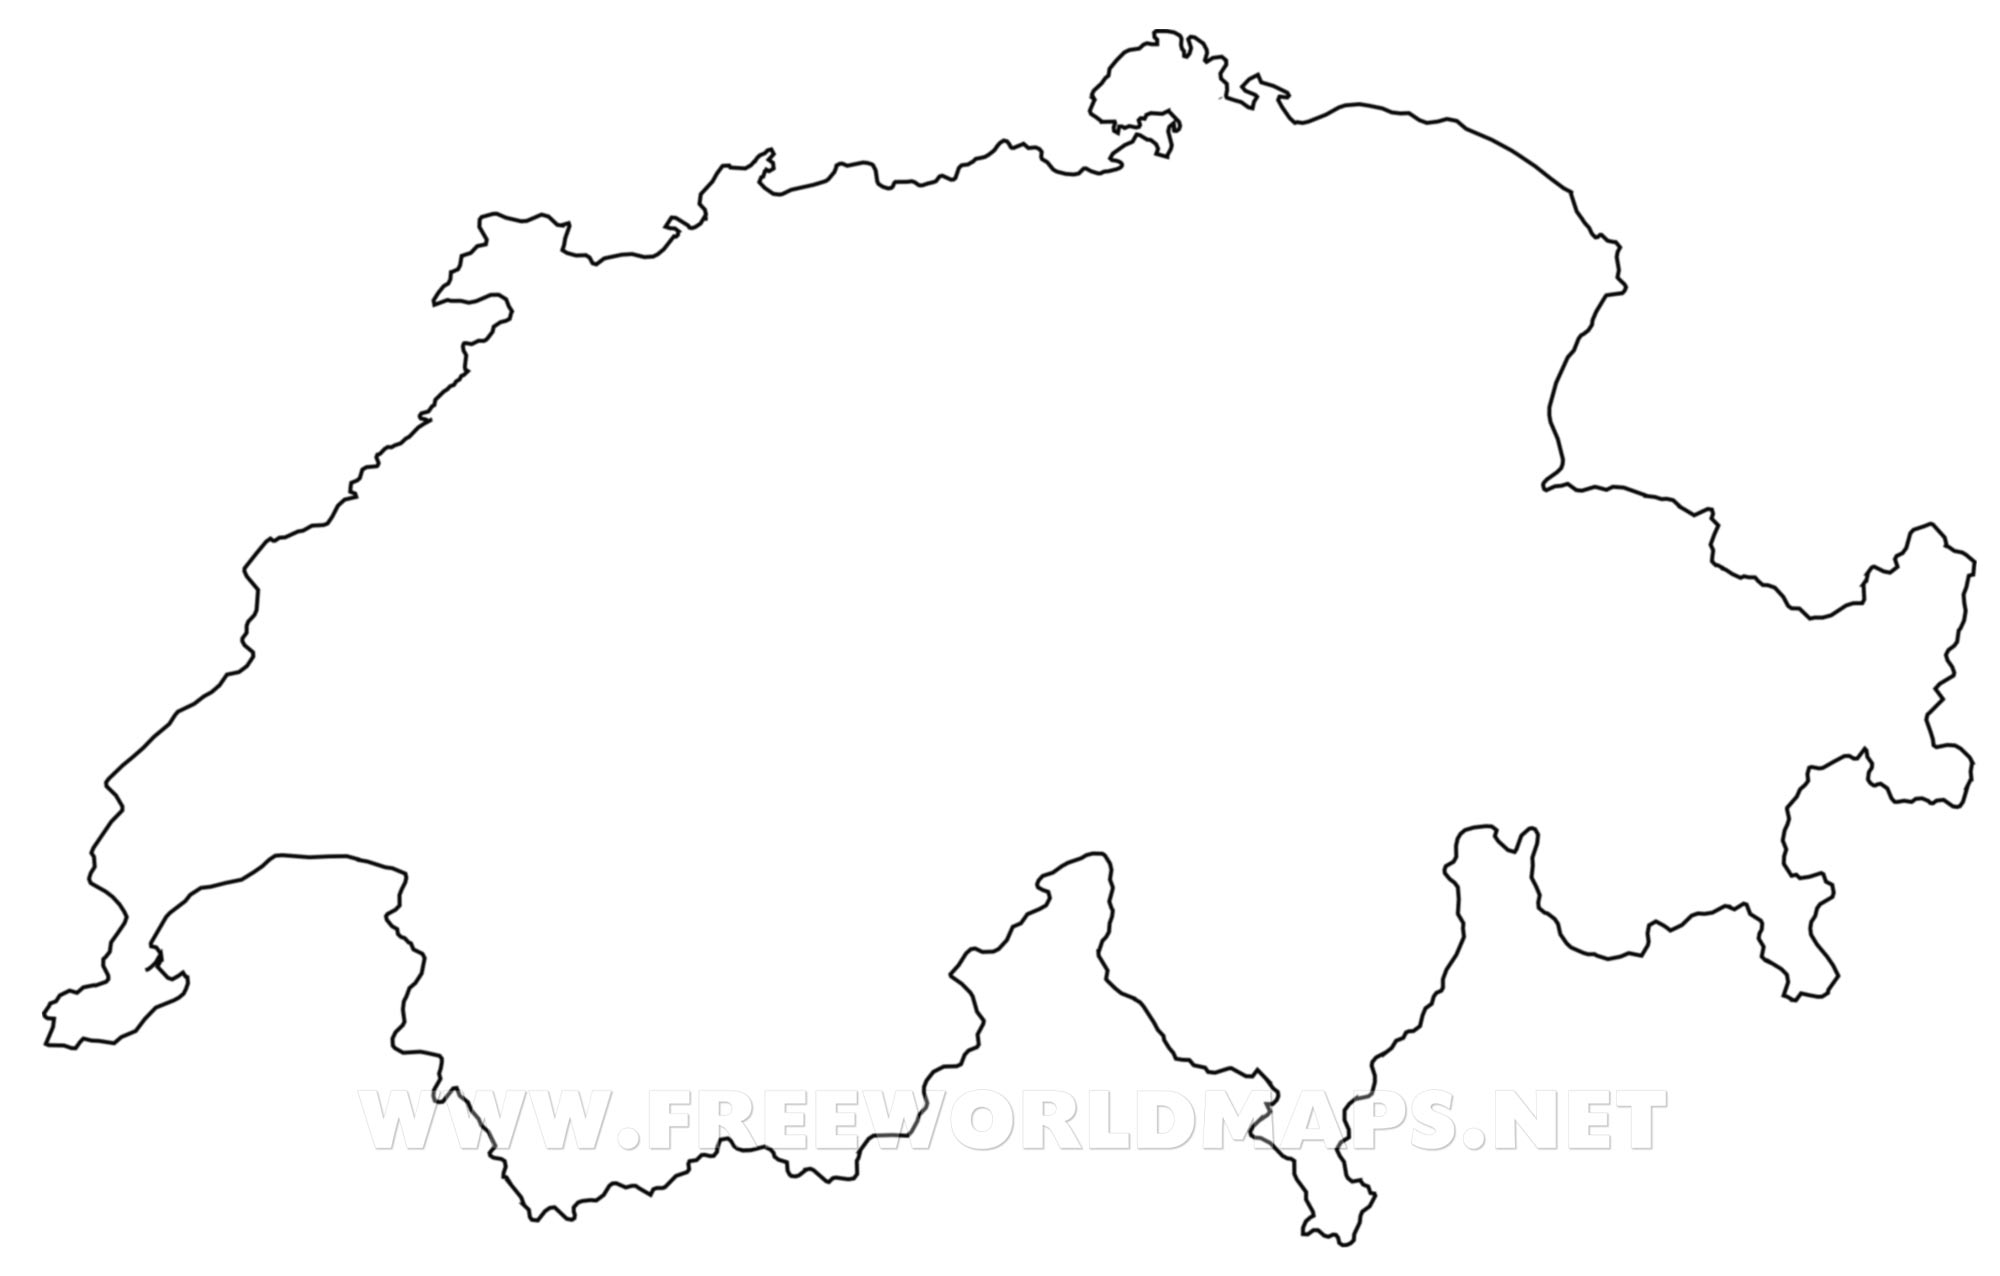 Switzerland Political Map - Europe political map outline printable